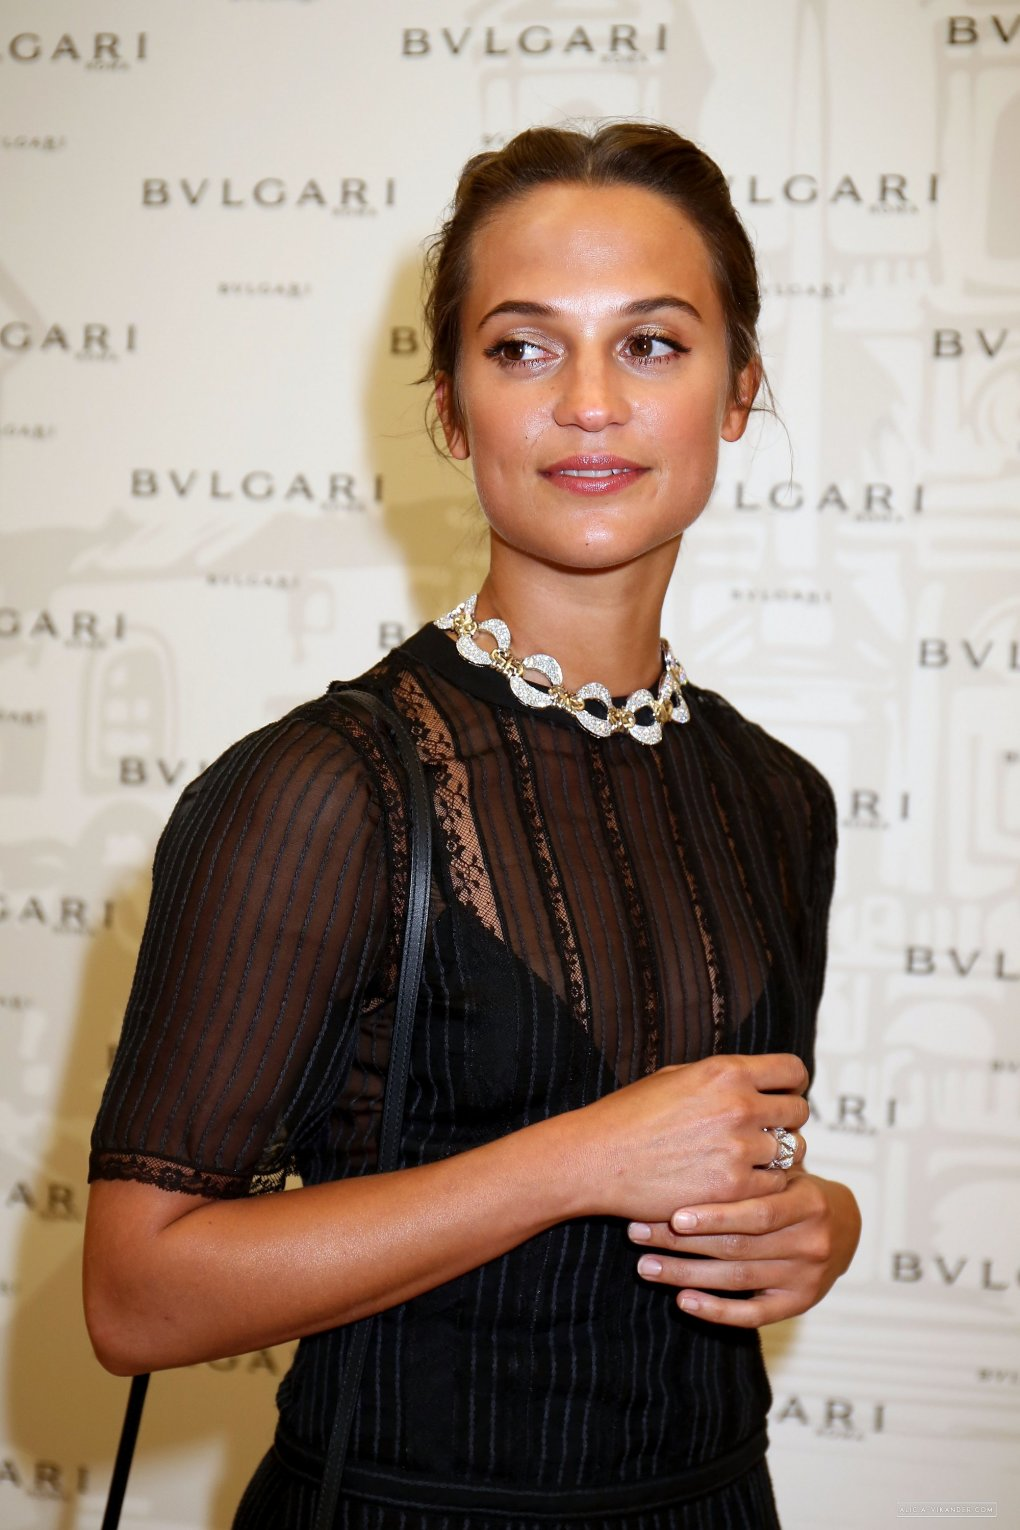 bvlgari tribute spanish steps opening event